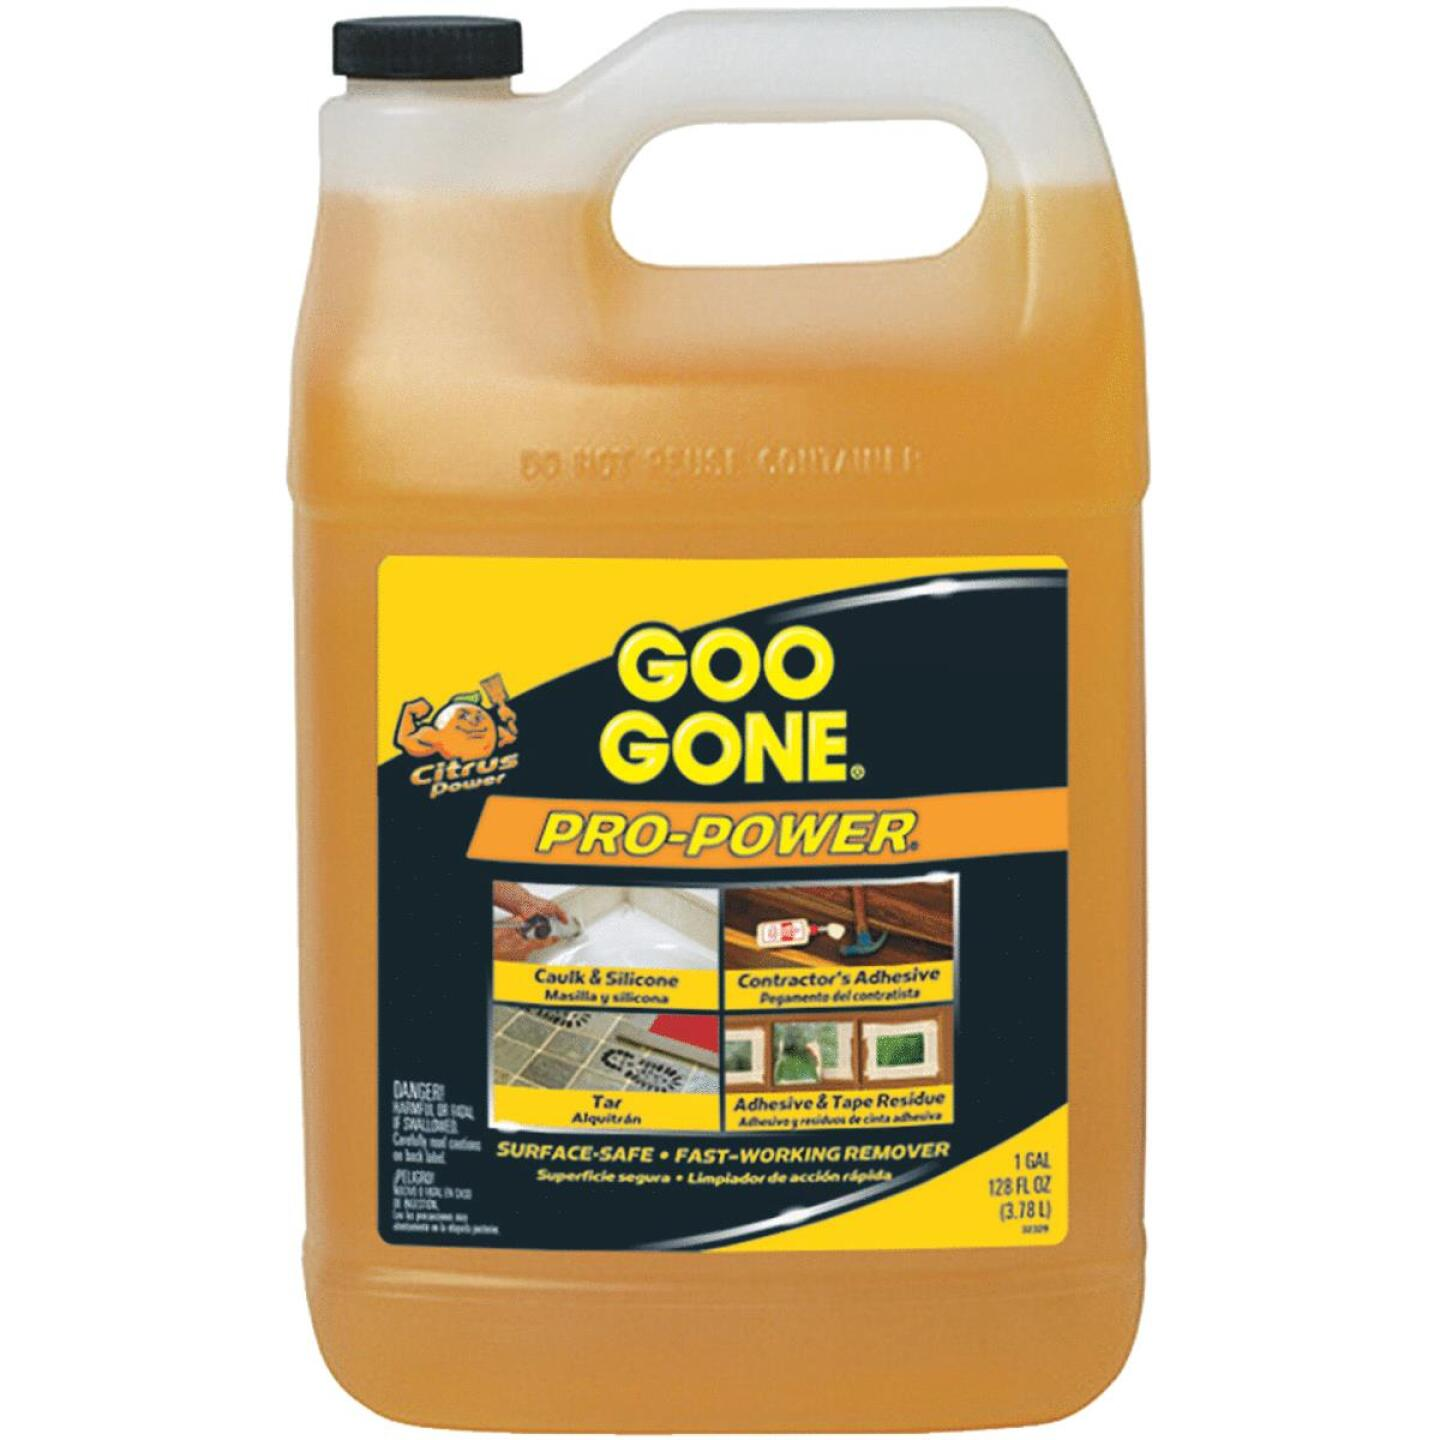 Goo Gone 1 Gal. Pro-Power Adhesive Remover Image 351